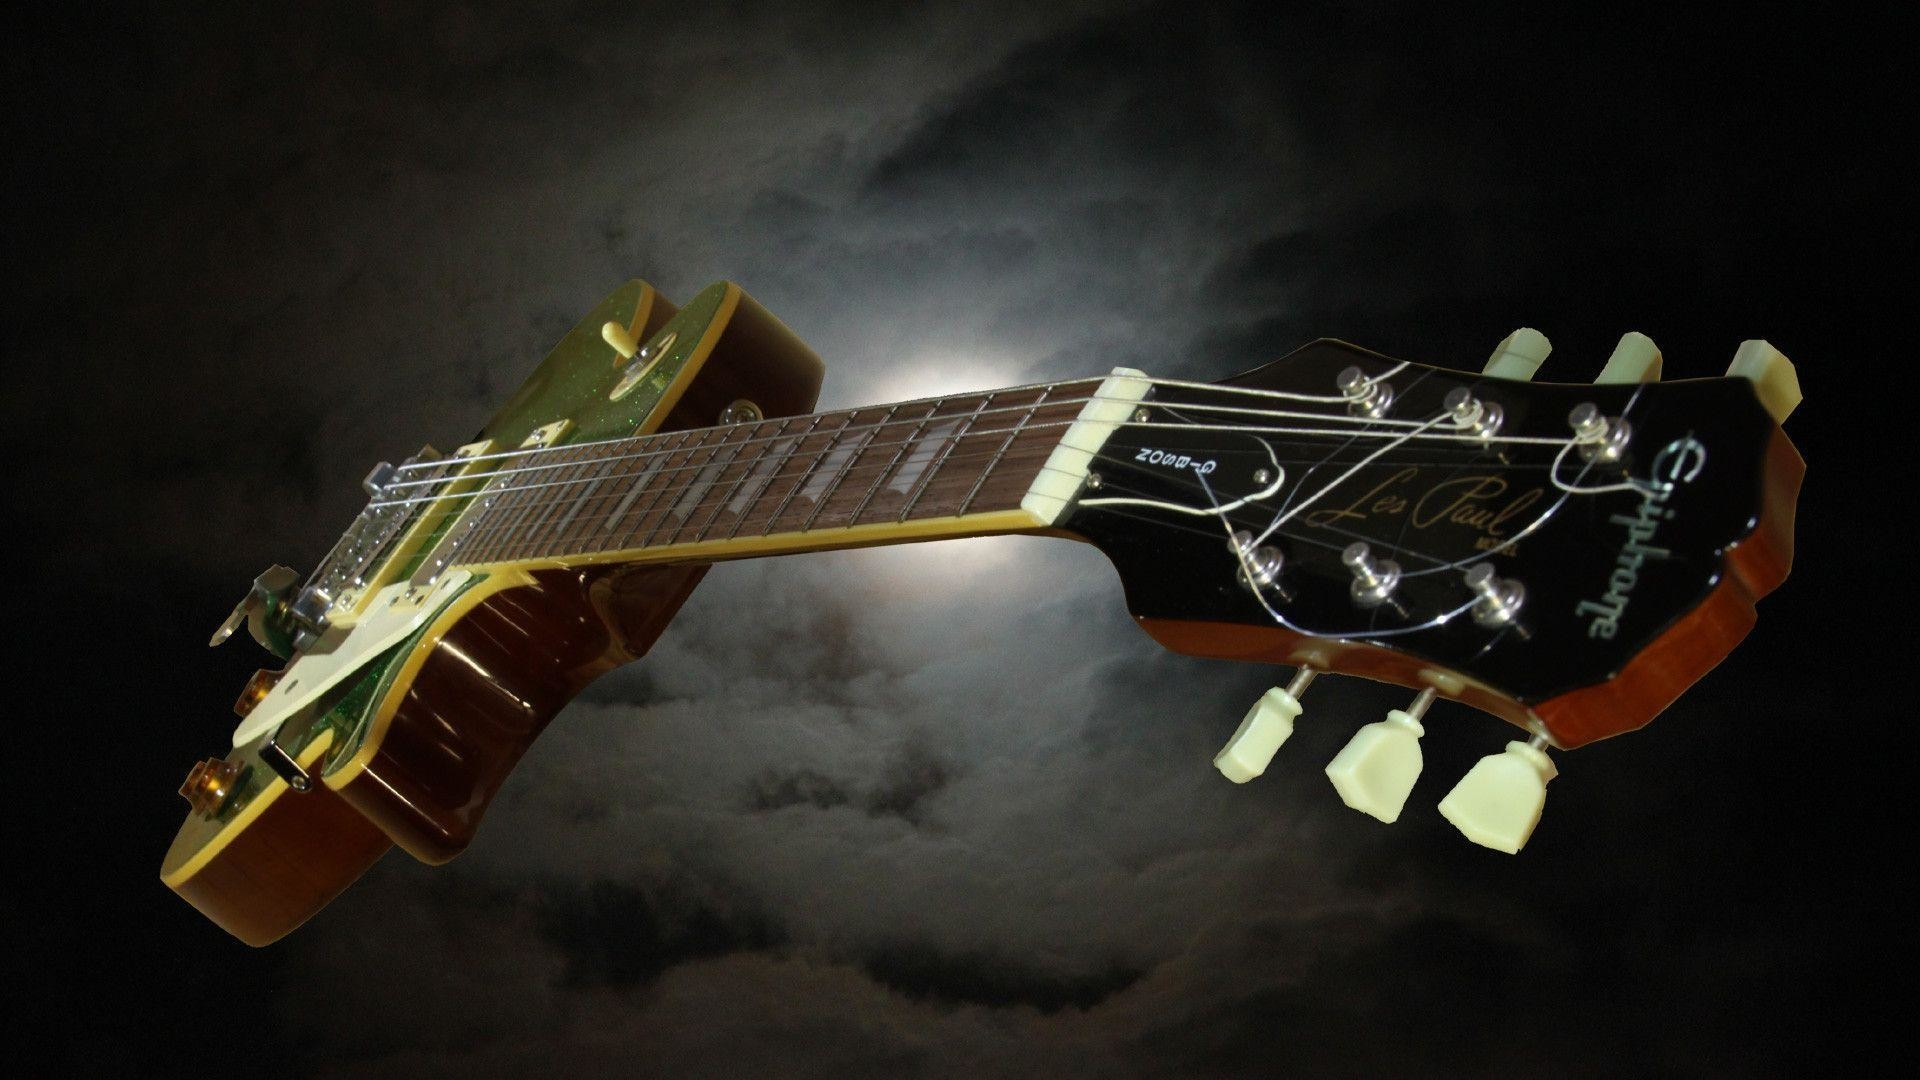 Fender Stratocaster Wallpapers – Wallpaper Cave